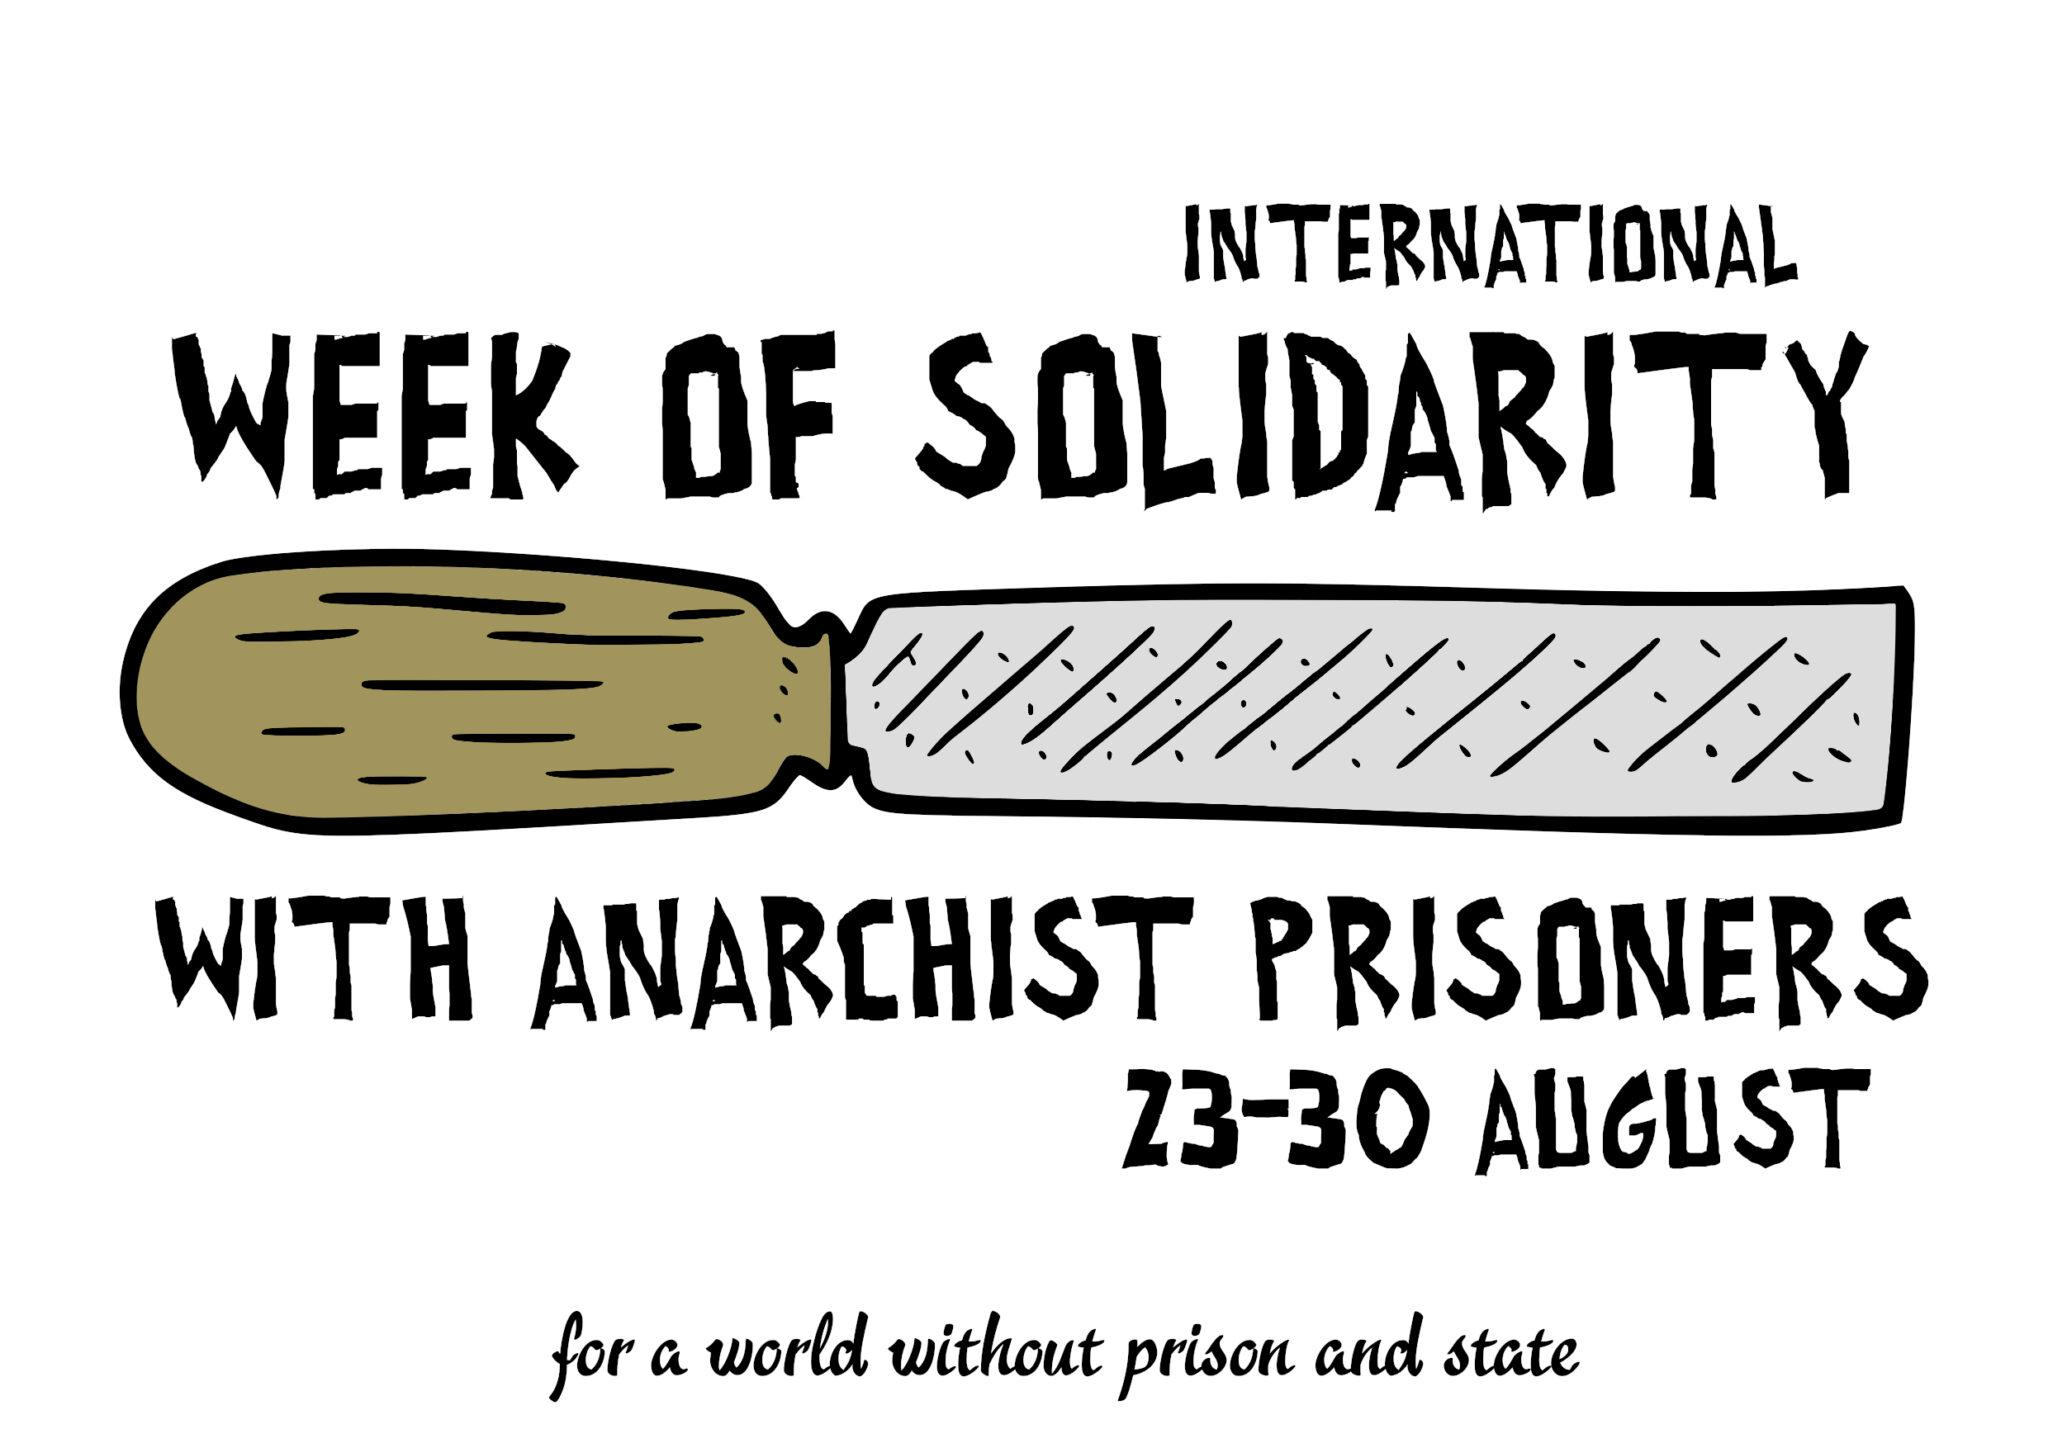 Till all are free – International Week of Solidarity with Anarchist Prisoners